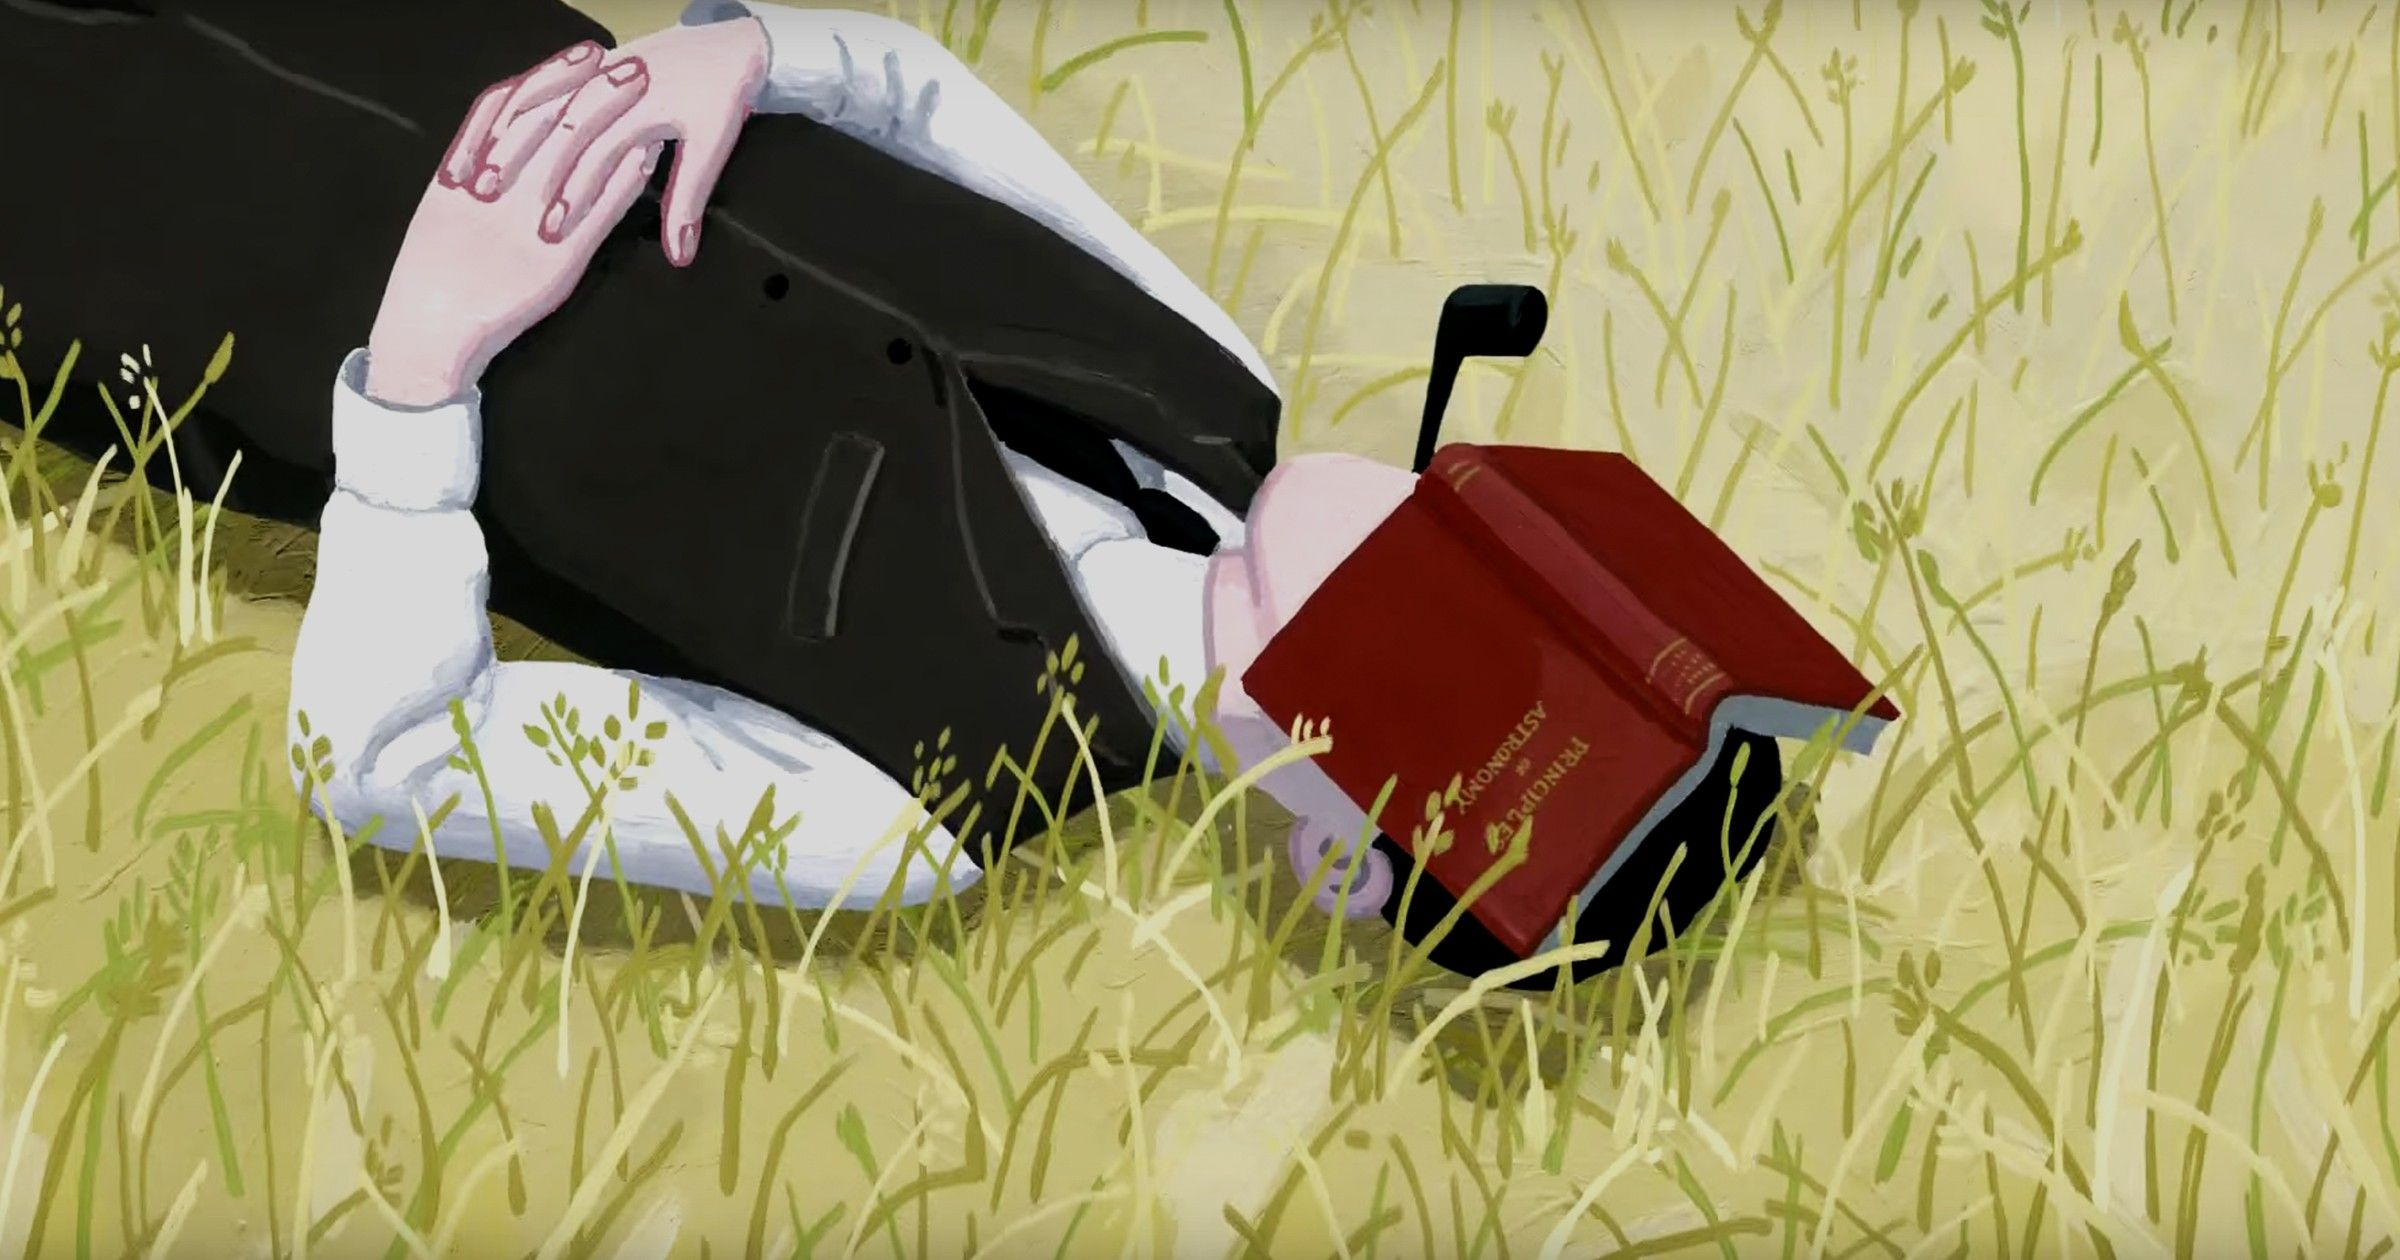 5 Animated Short Films to Inspire Your Next Project